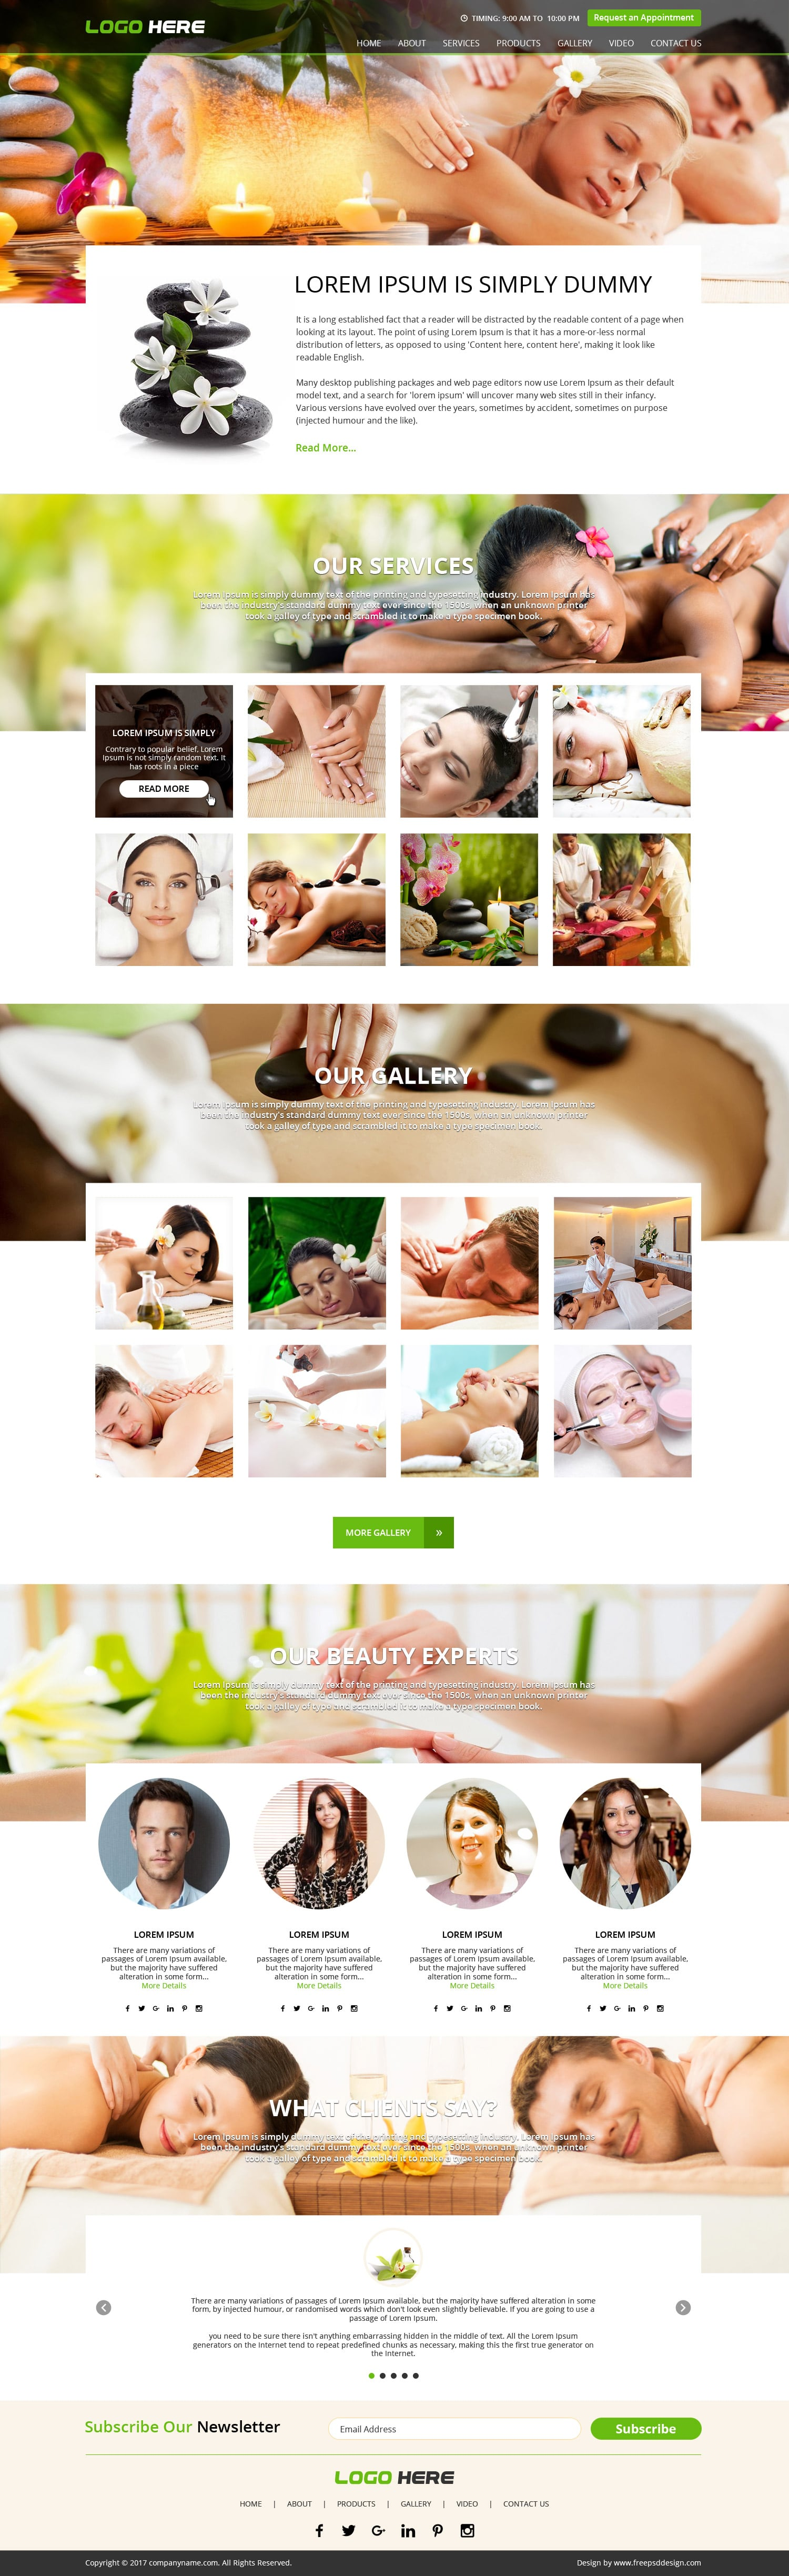 Natural Spa Saloon Website Design PSD Template